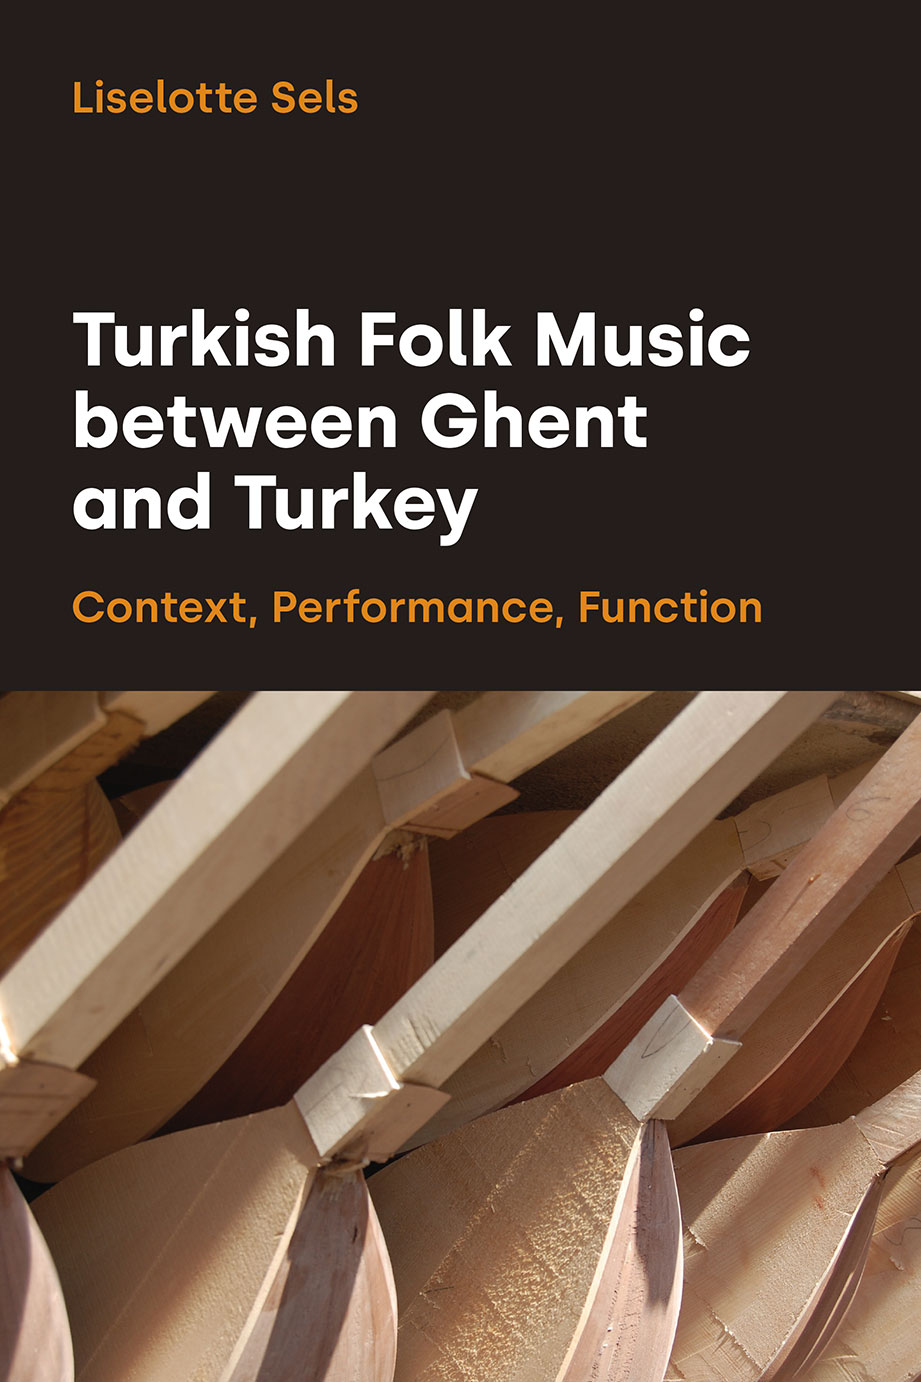 Turkish Folk Music between Ghent and Turkey - Context, Performance, Function - Liselotte Sels